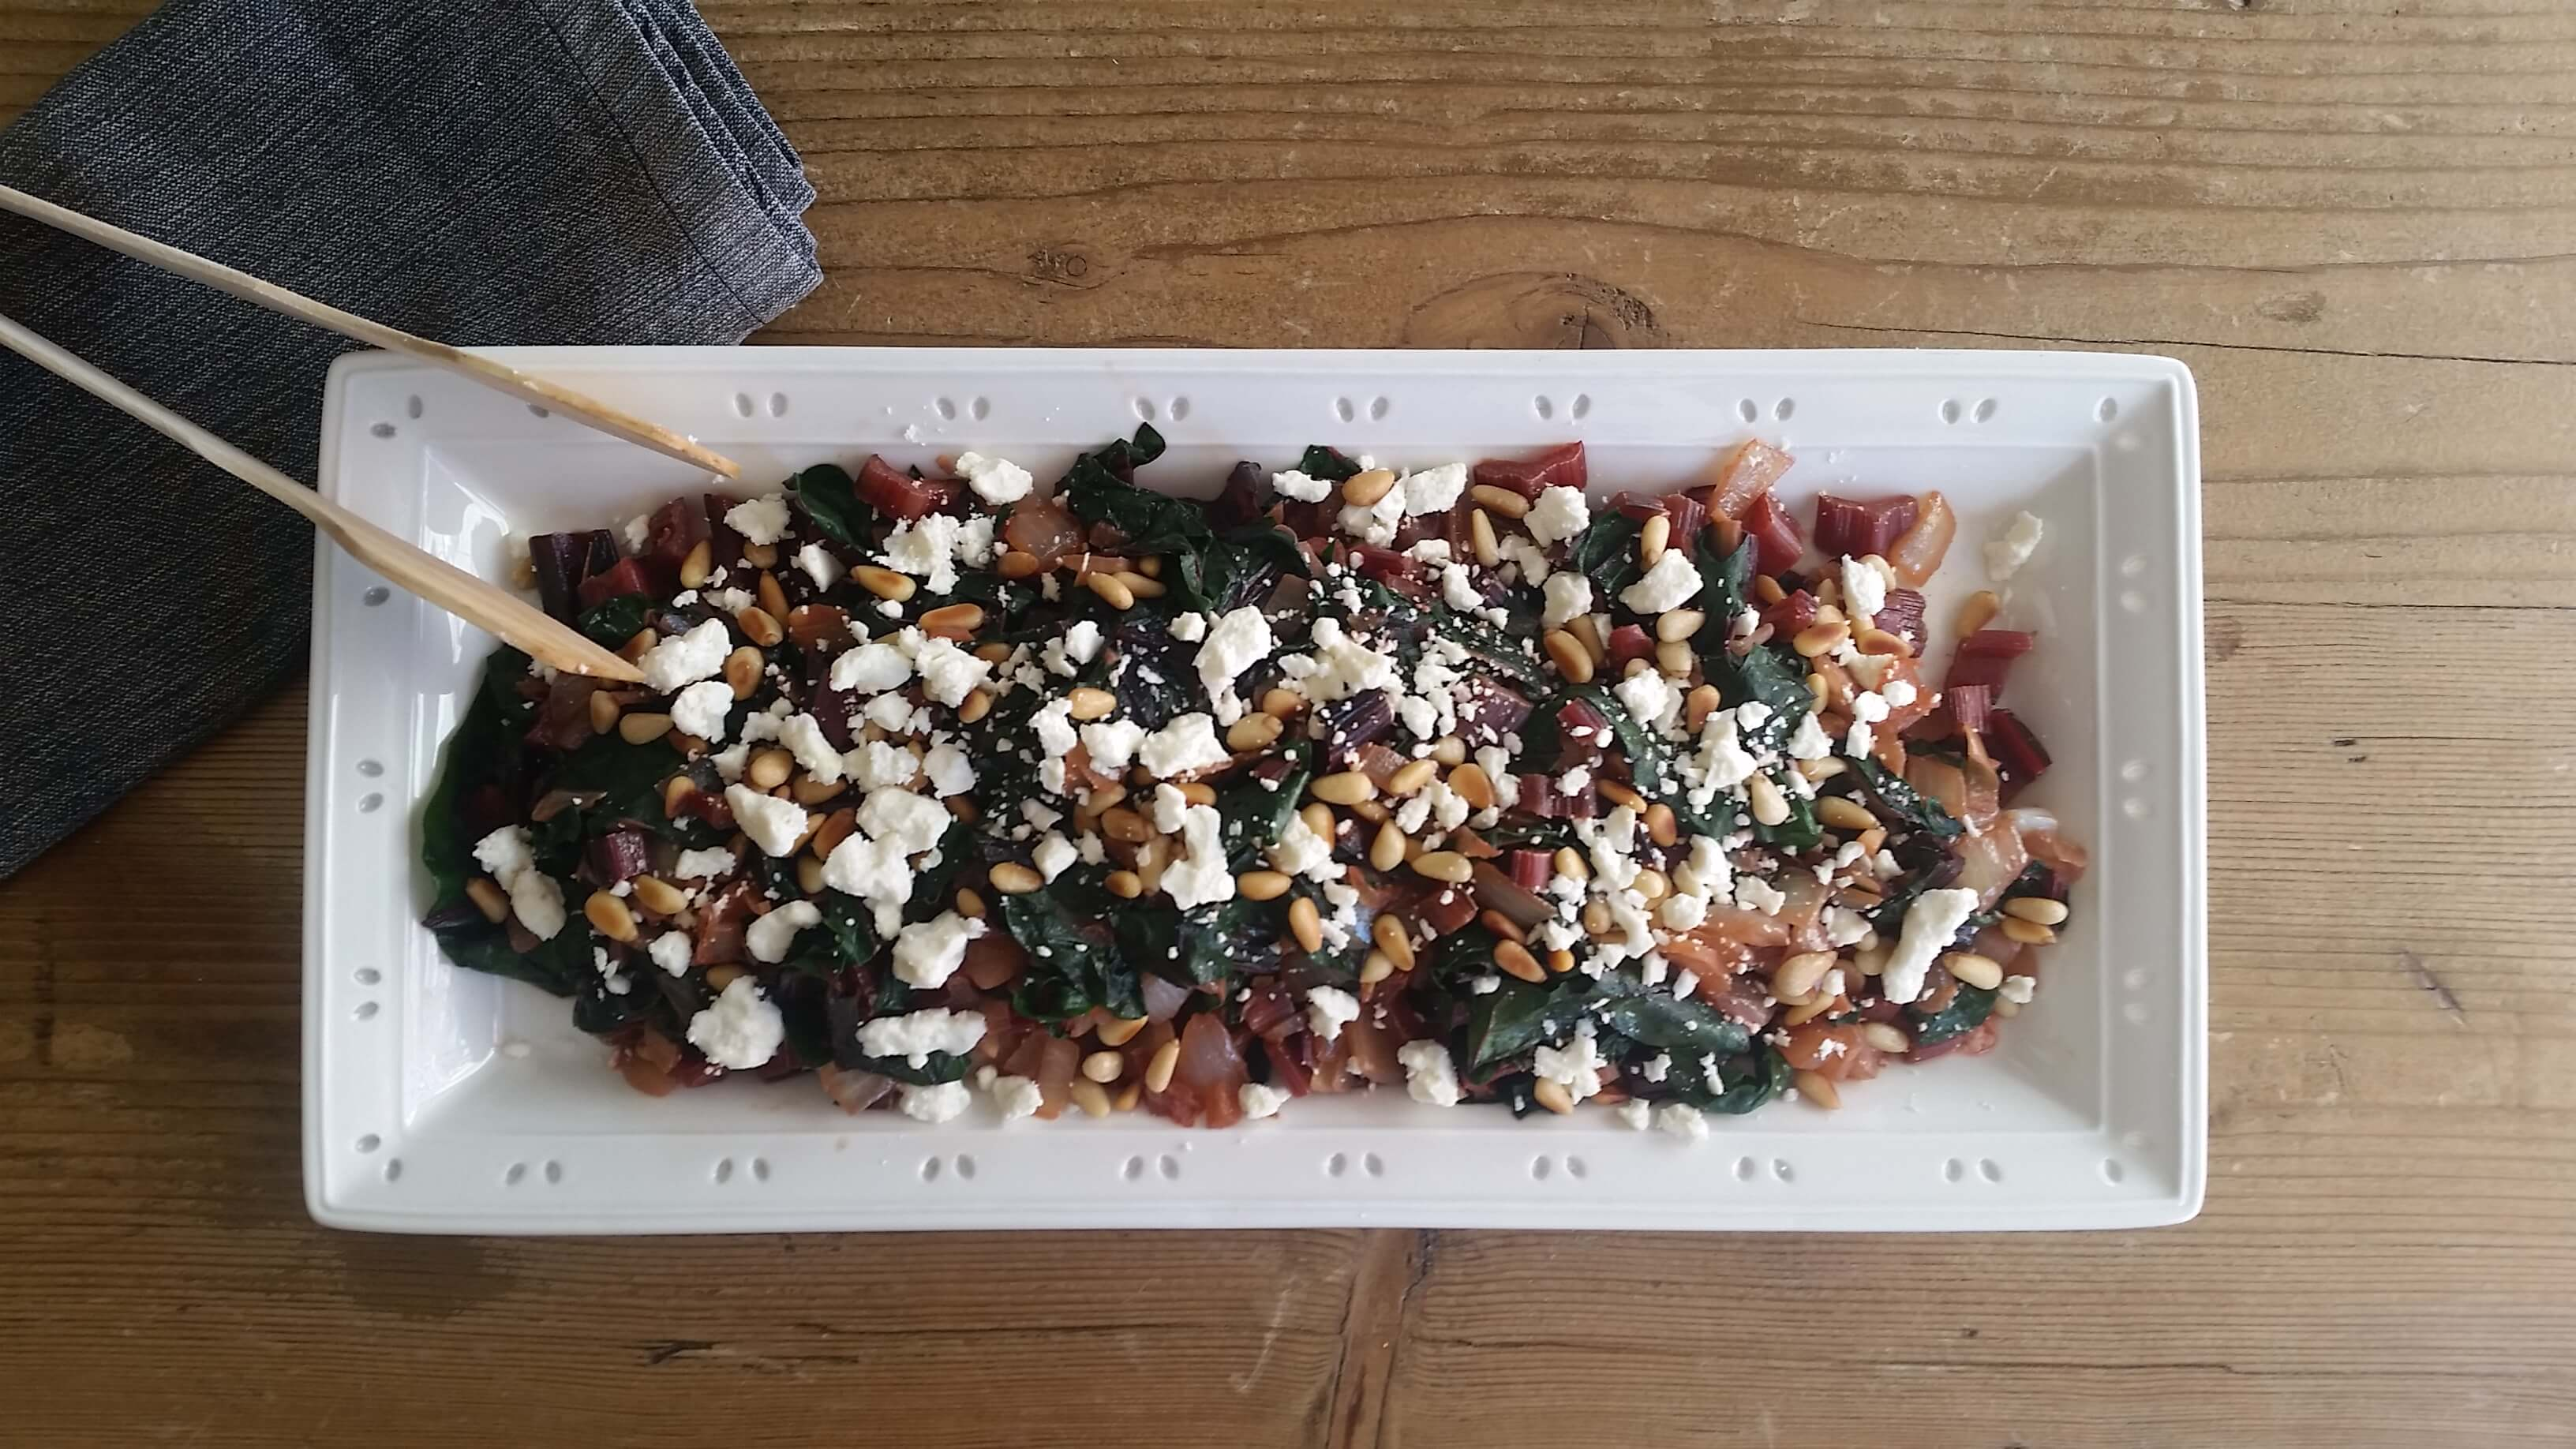 Chard Recipe with Pine Nuts and Feta Cheese